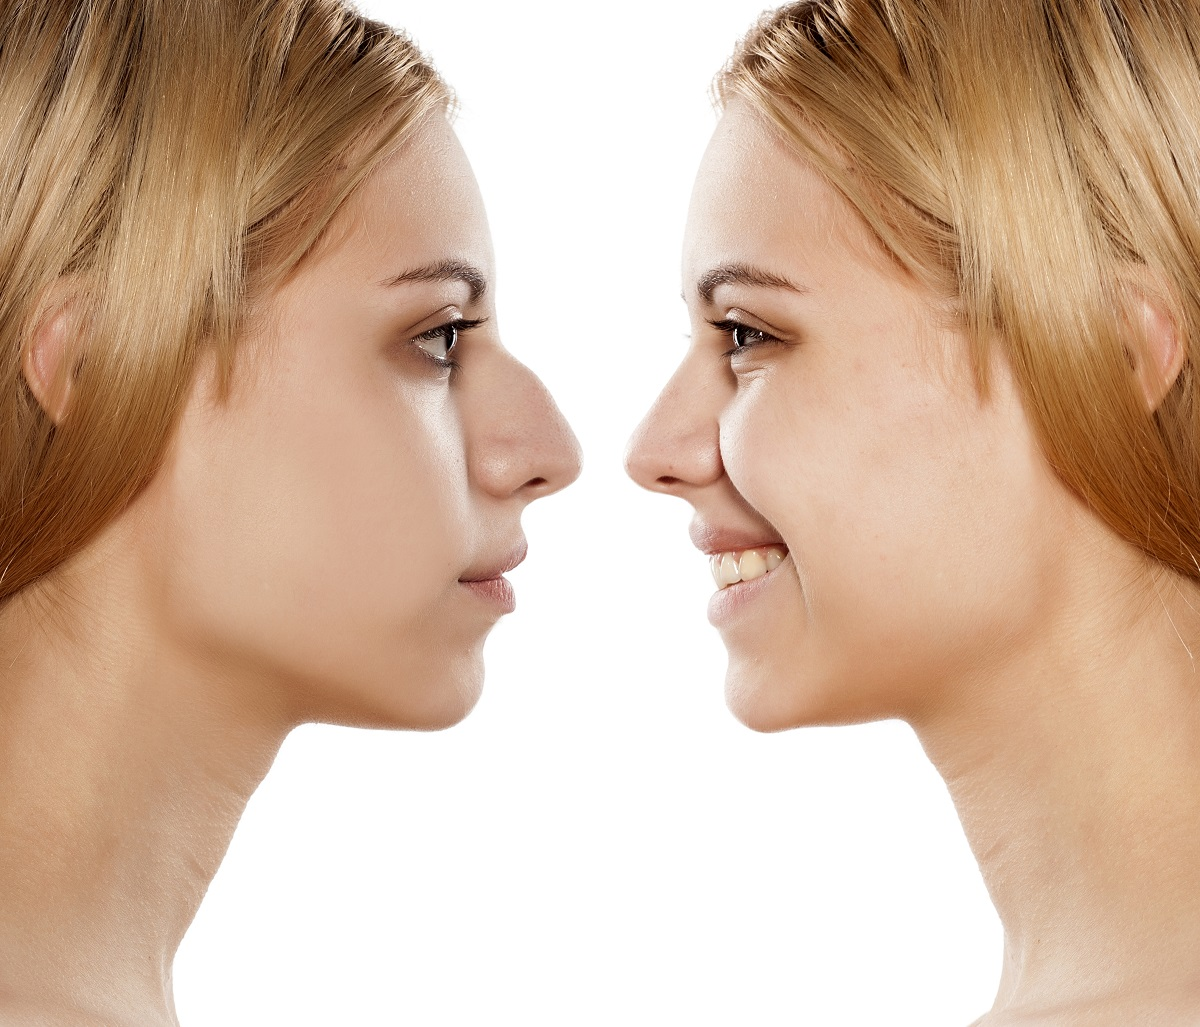 Before and after picture of female who went through a nose job operation